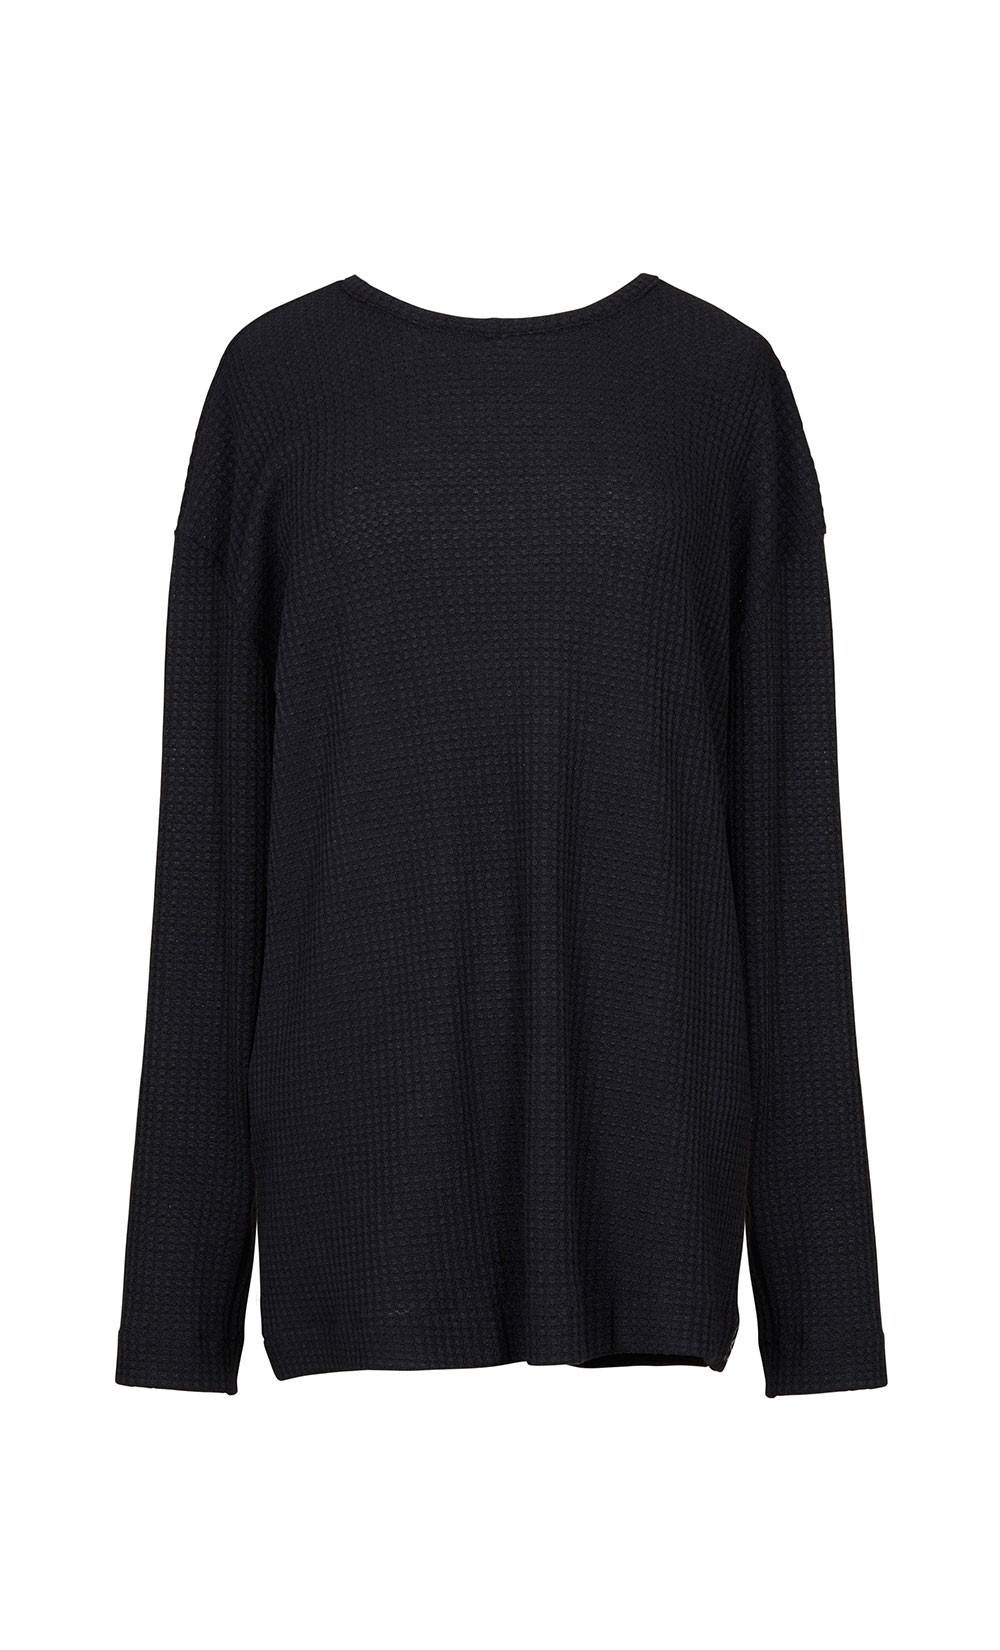 ETAM KNIT SWEATSHIRT